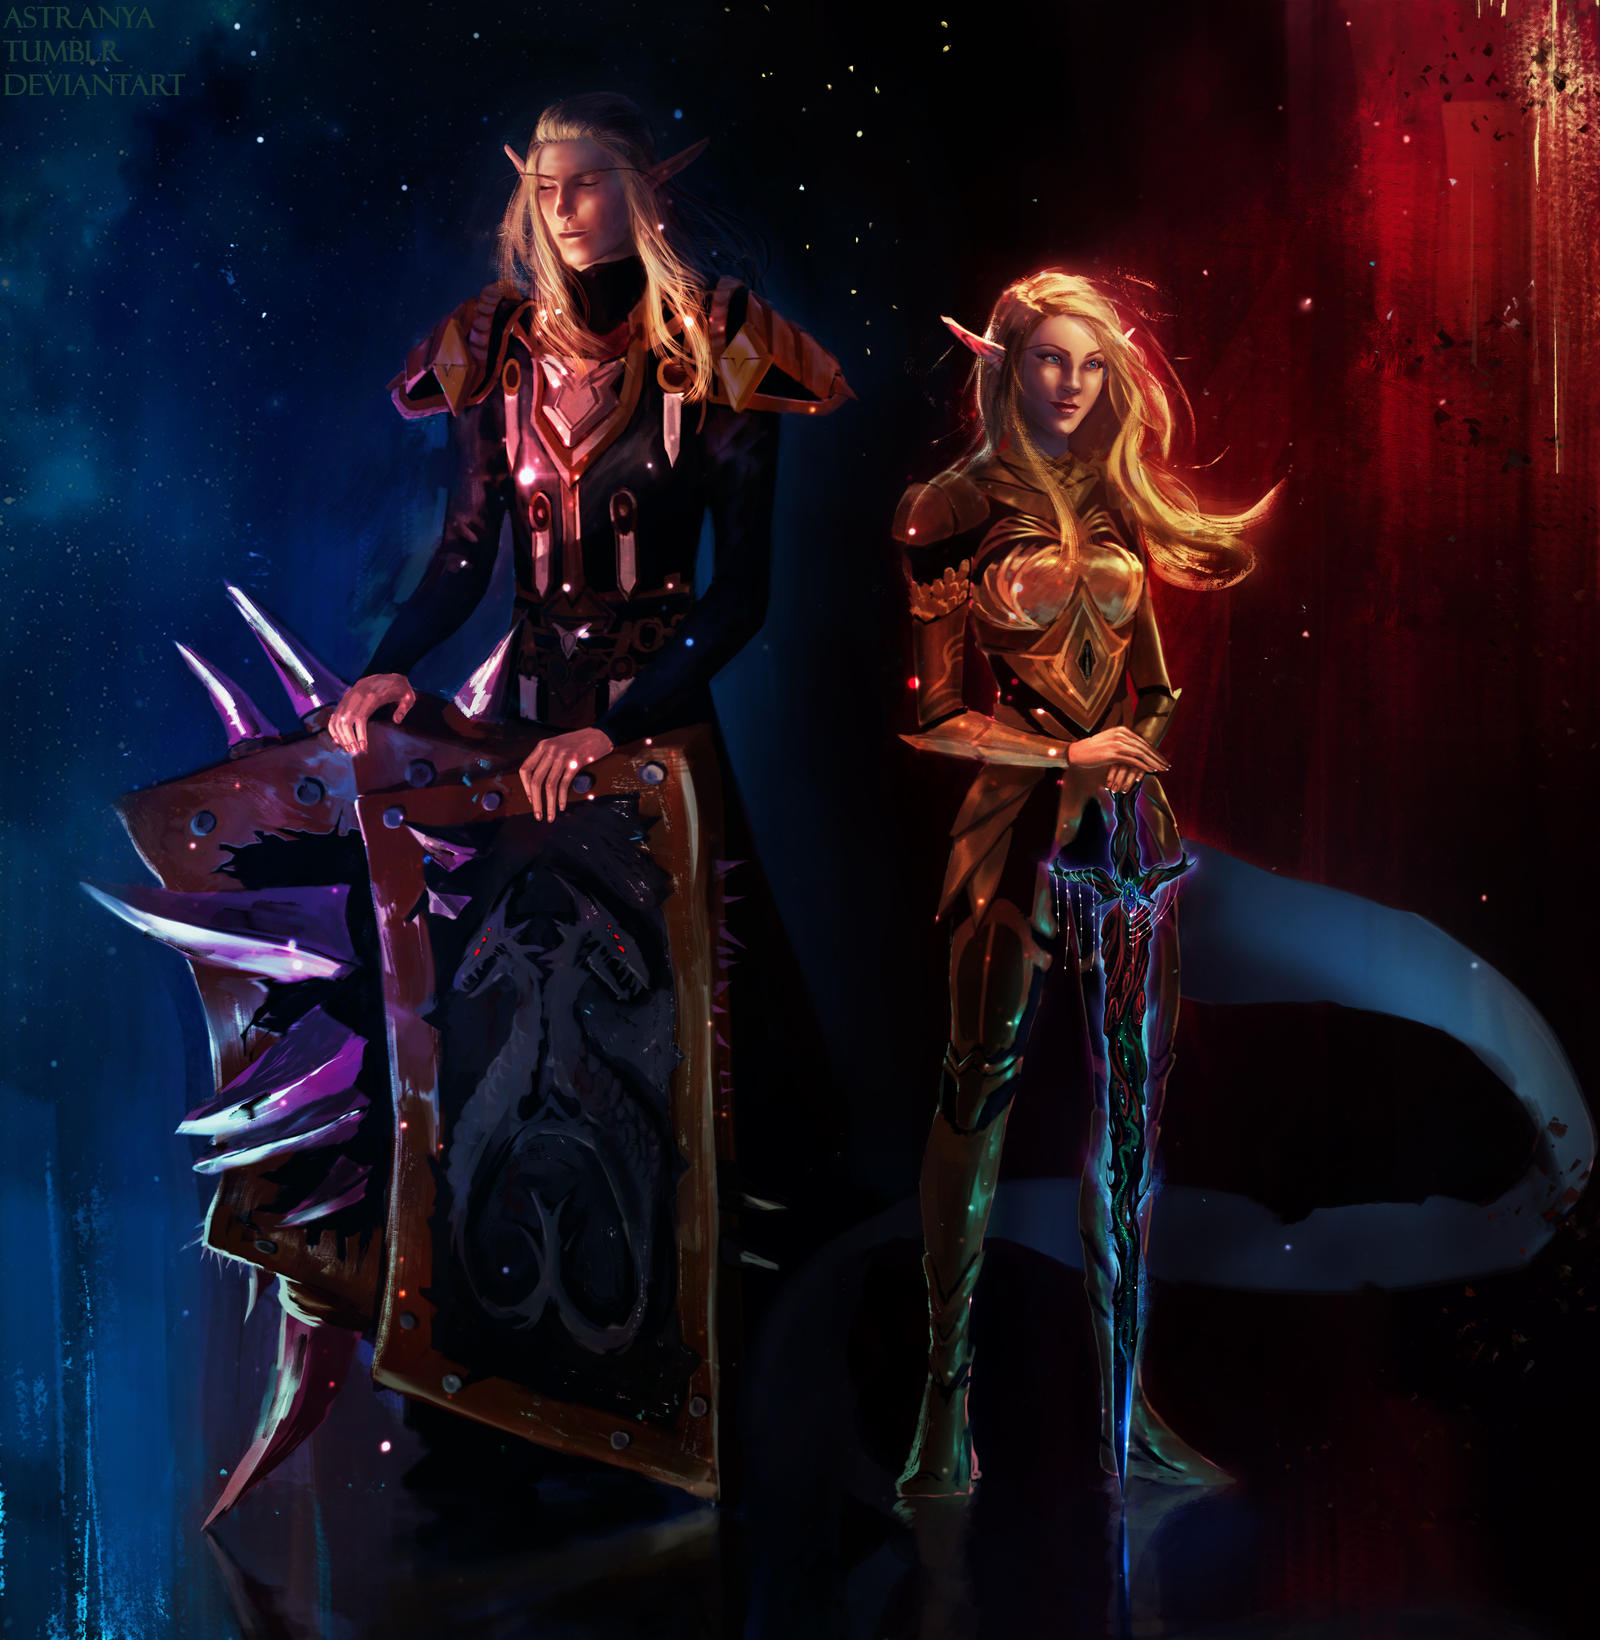 theodora_nightsorrow_and_lord_nightsorrow__comms__by_astranya-d9utu78.jpg